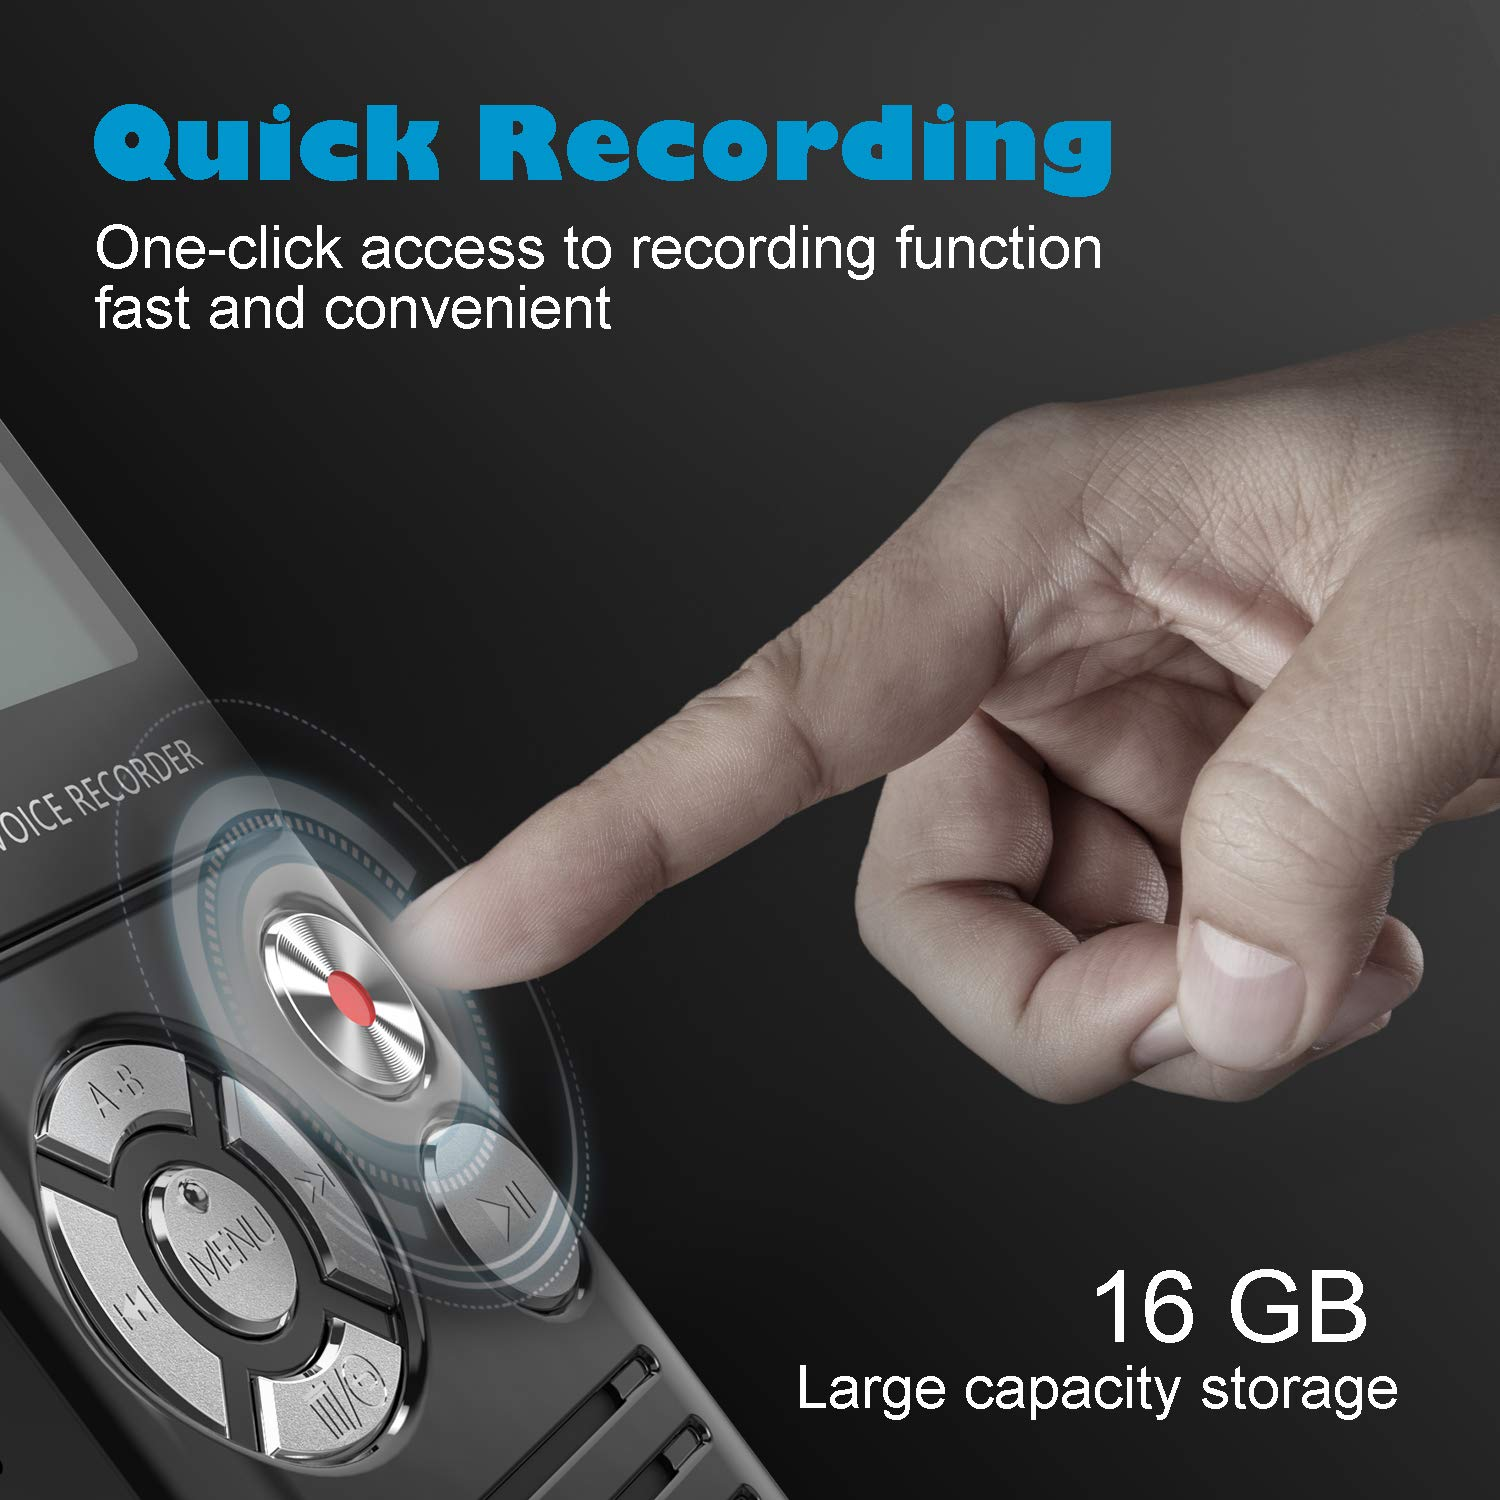 Digital Voice Recorder, HOMIEI 16 GB Voice Activate Recorder/ MP3 Player Rechargeable, HD Audio Recorder with Dual Intelligent Noise Reduction Microphones, for Meetings/Interviews/ Lectures/Class